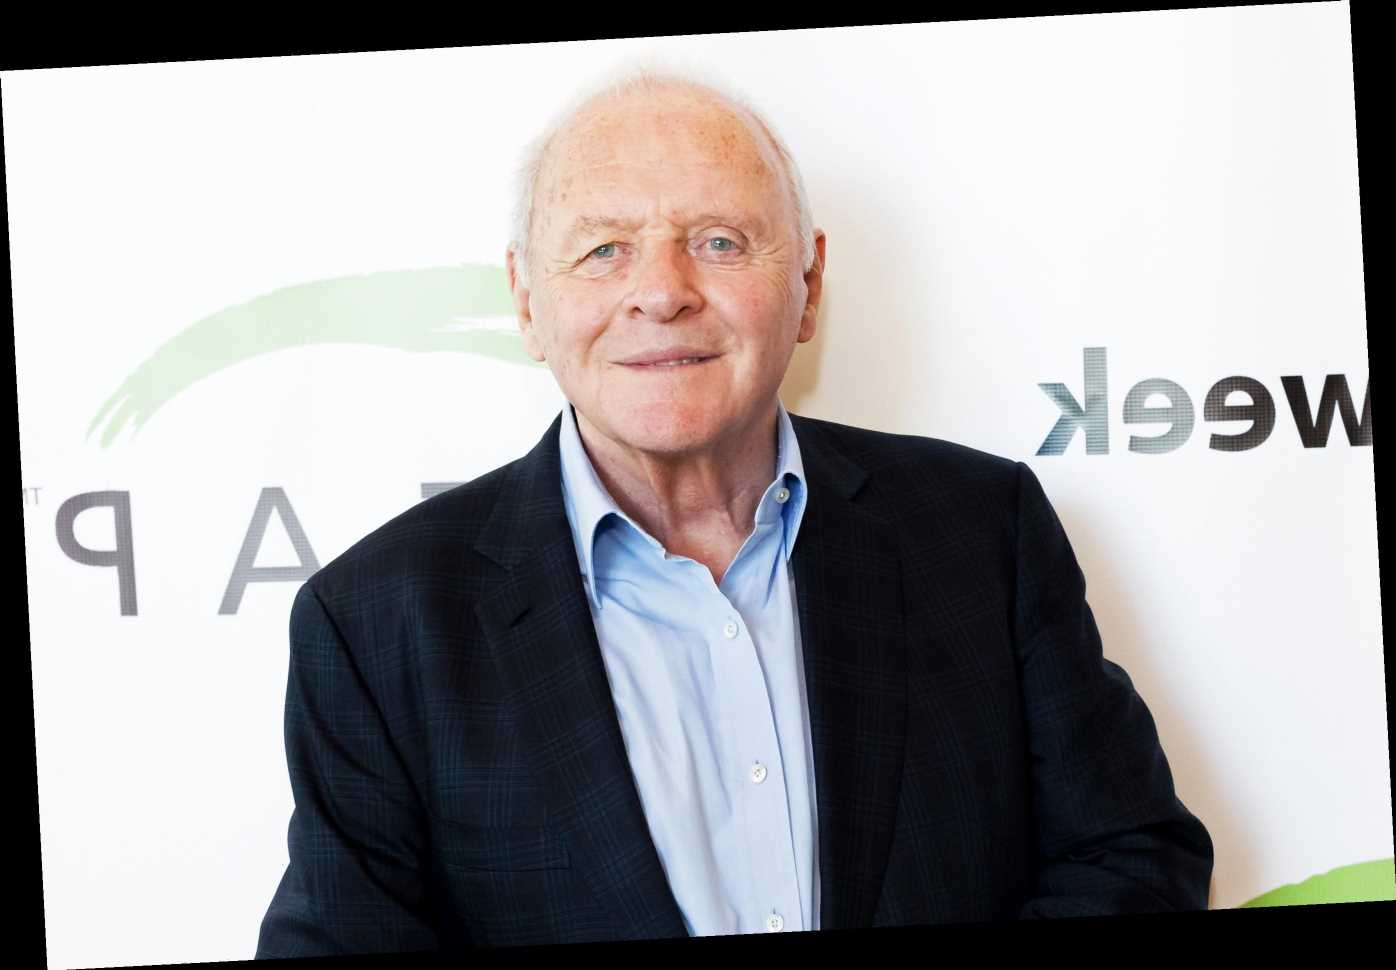 Why Anthony Hopkins, 81, Says He'll Never Stop Working: 'It Keeps the Brain Active'